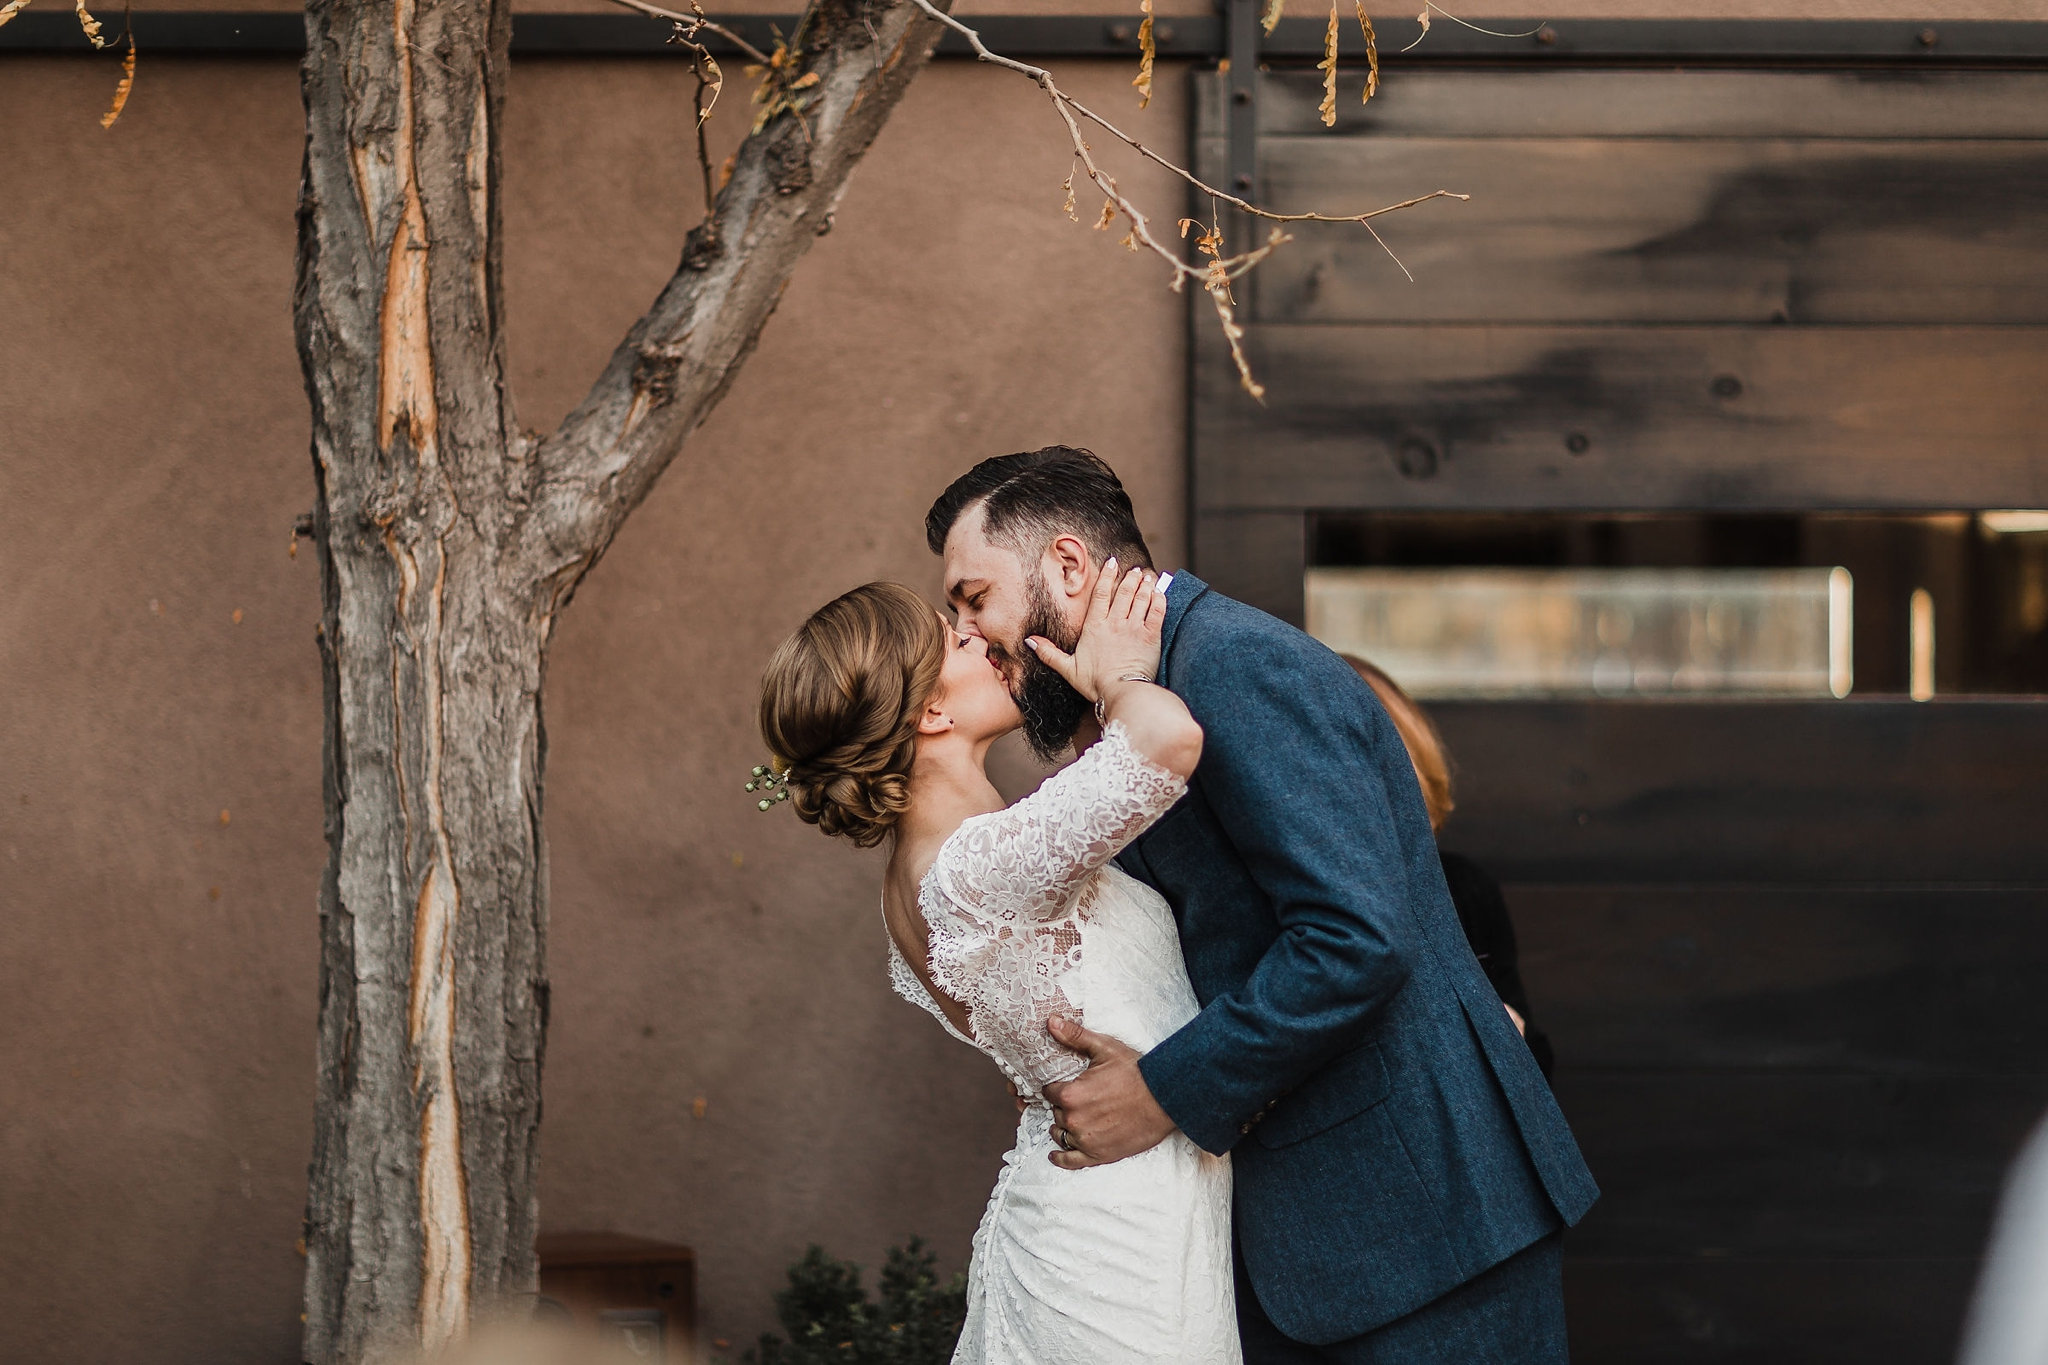 Alicia+lucia+photography+-+albuquerque+wedding+photographer+-+santa+fe+wedding+photography+-+new+mexico+wedding+photographer+-+new+mexico+wedding+-+wedding+vows+-+writing+your+own+vows+-+wedding+inspo_0025.jpg